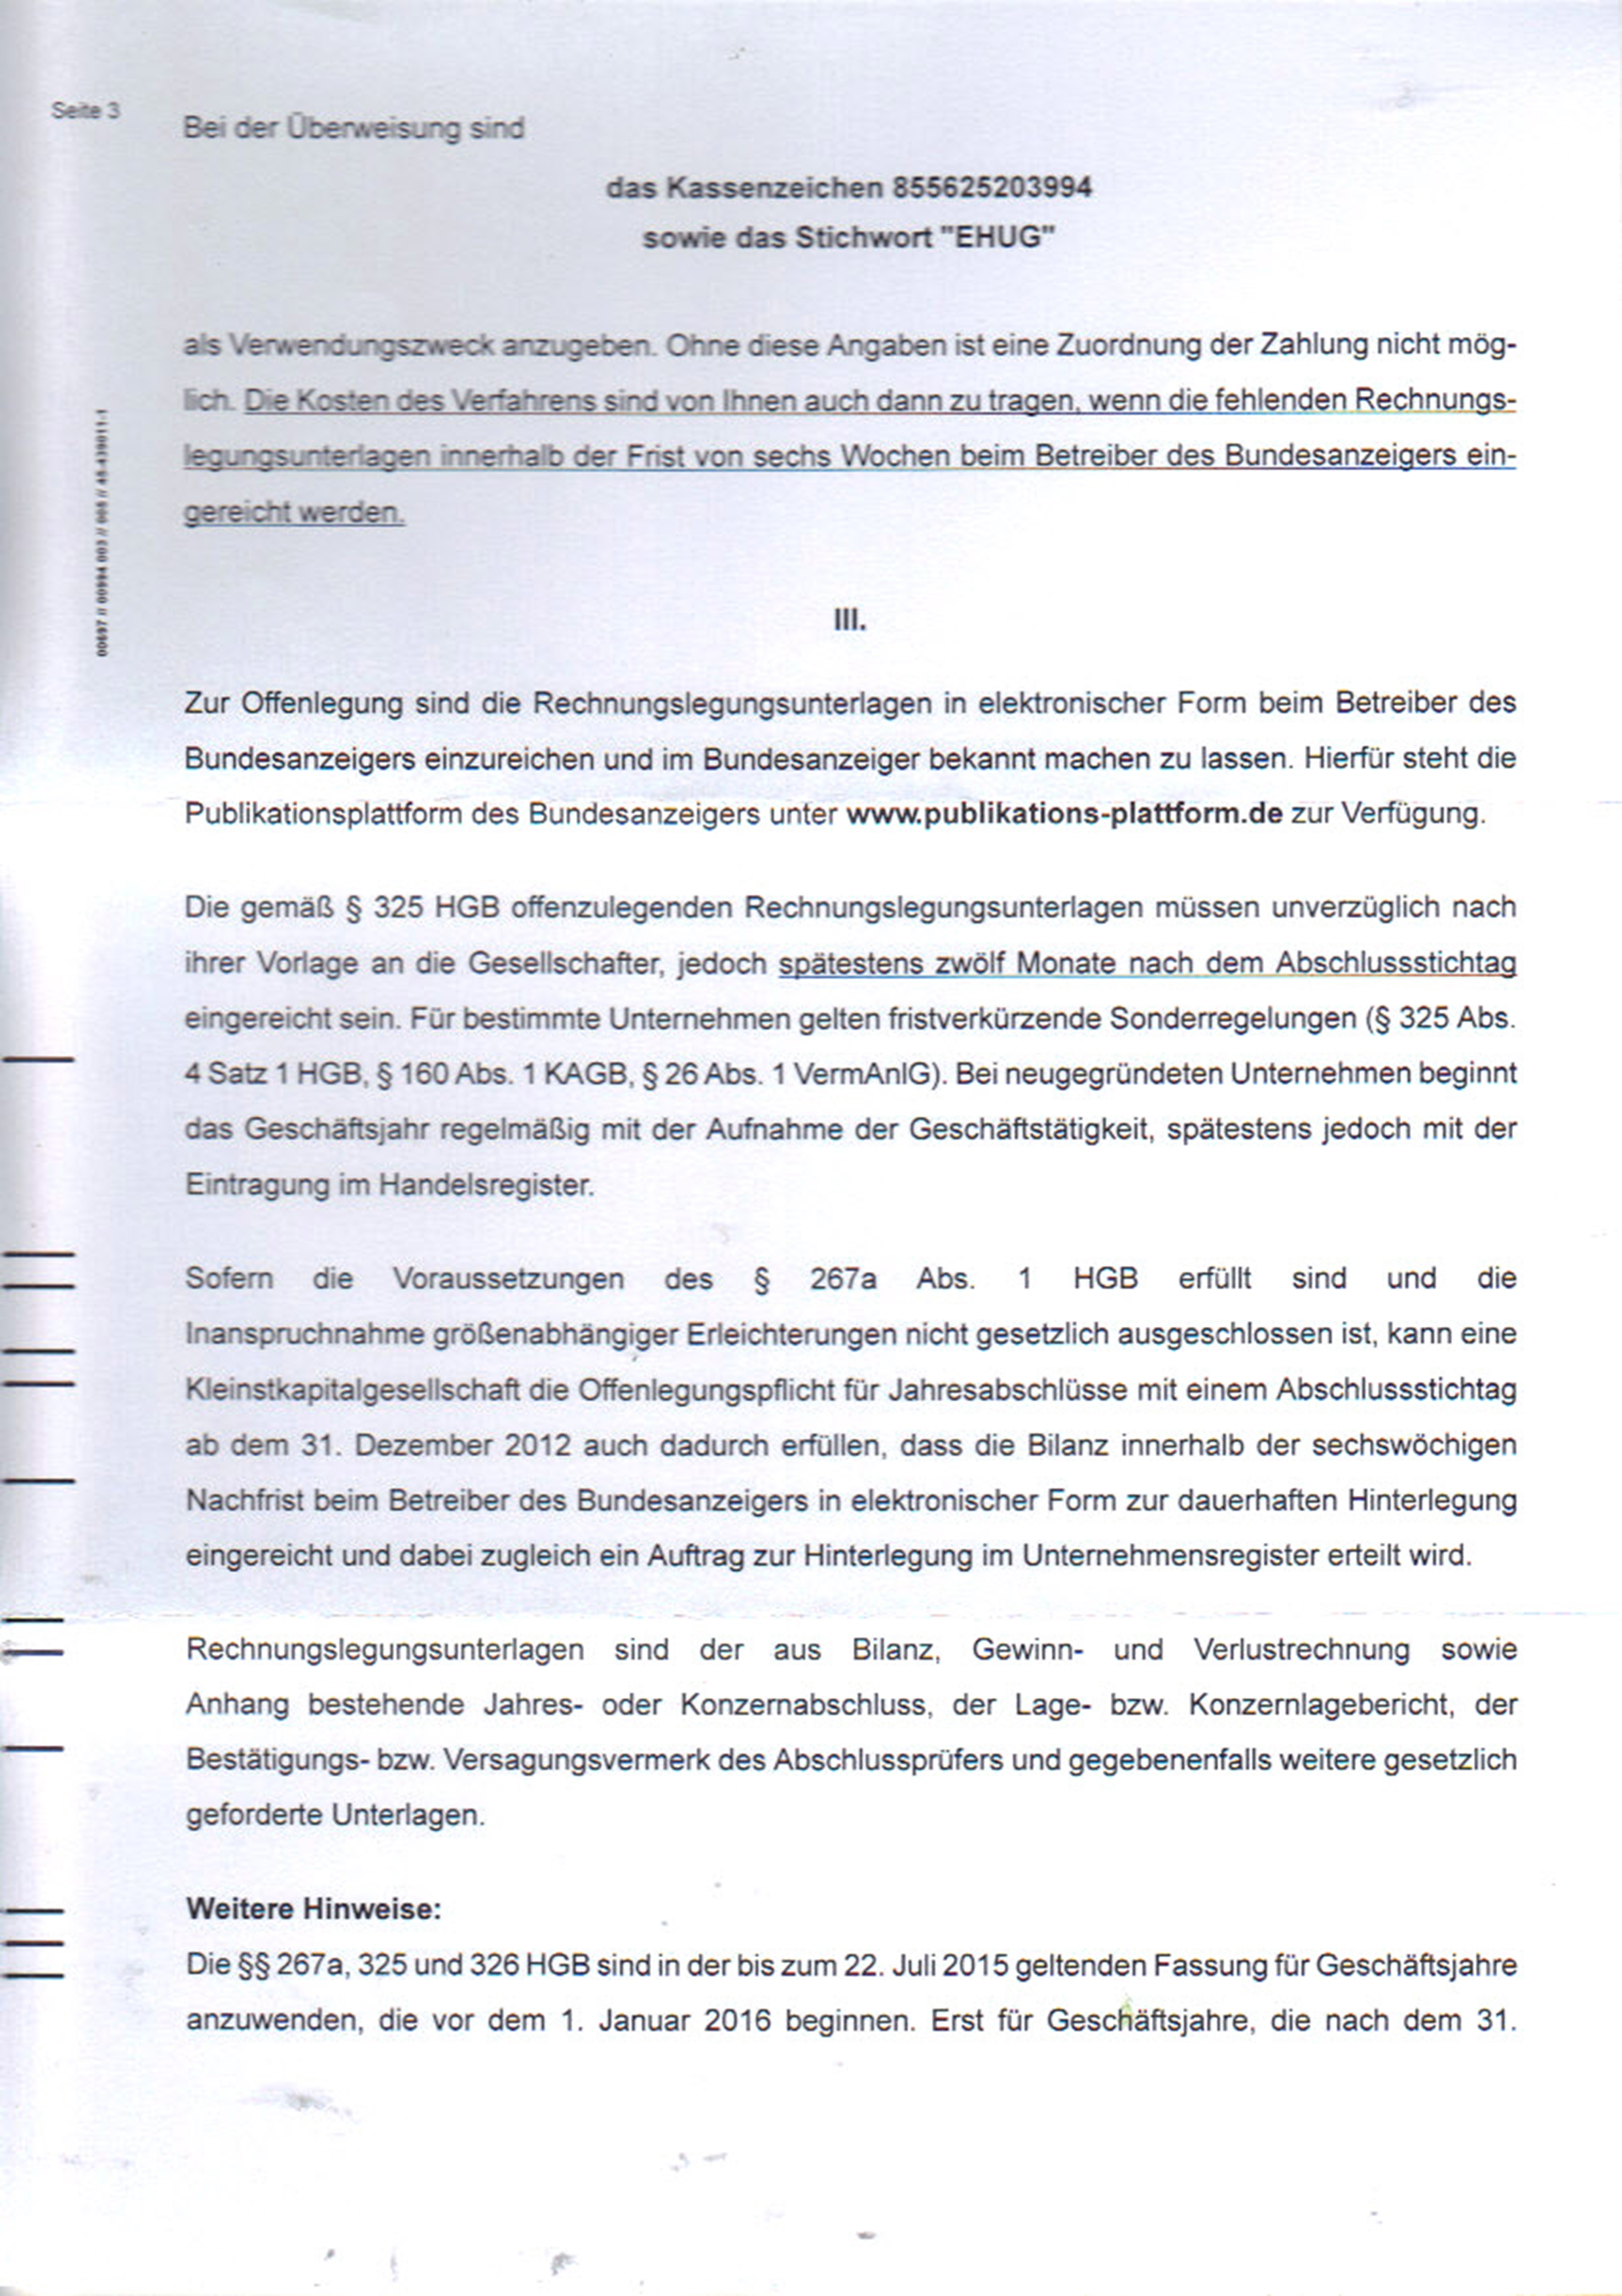 2016-10-14 - Androhung Ordnungsgeld-page3